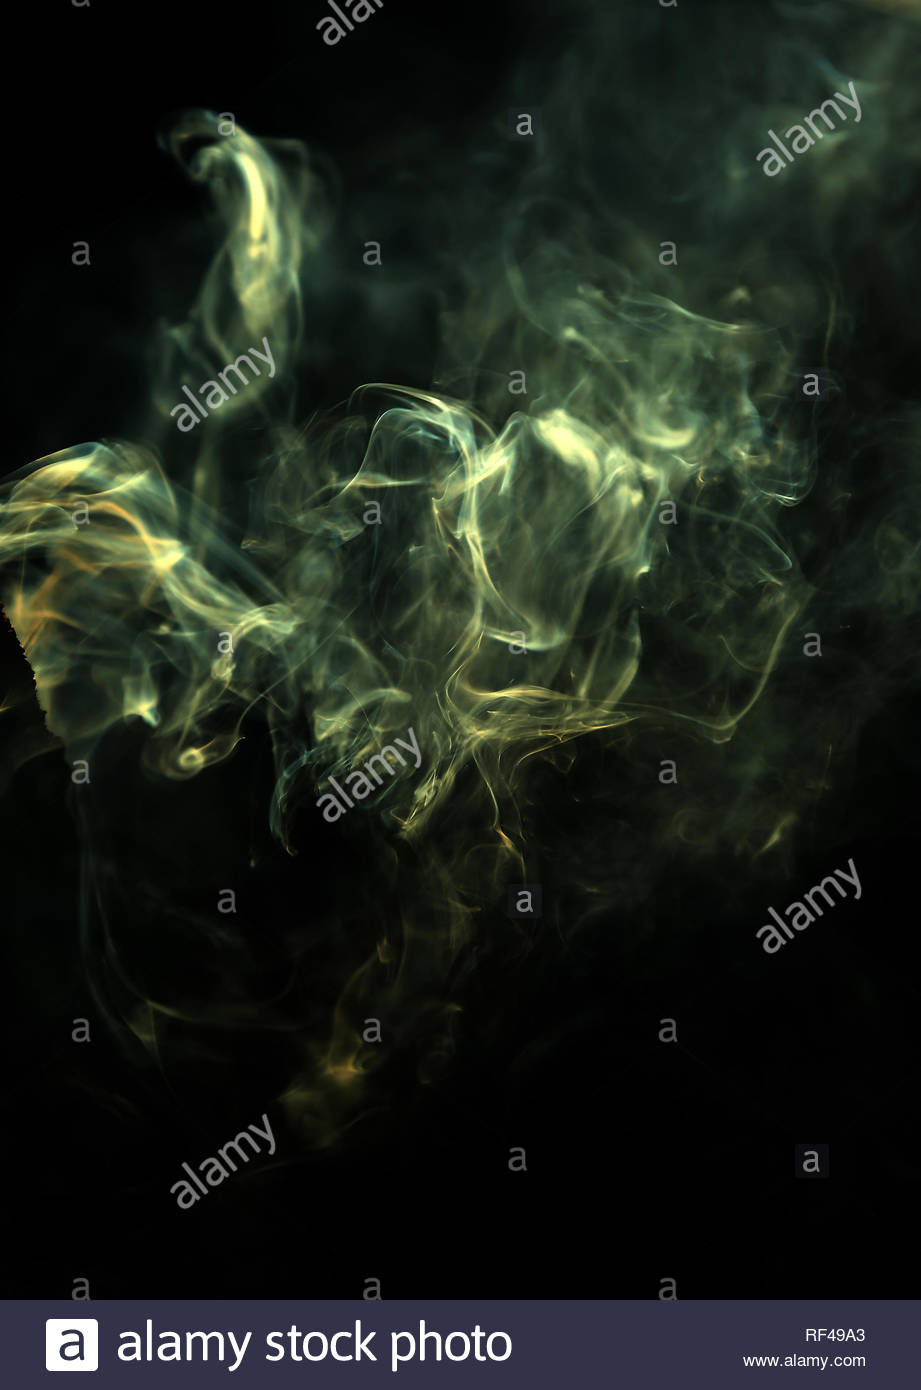 Green morning sunlight passing through rising smoke from a dying campfire creating an ethereal abstract mood. - Stock Image